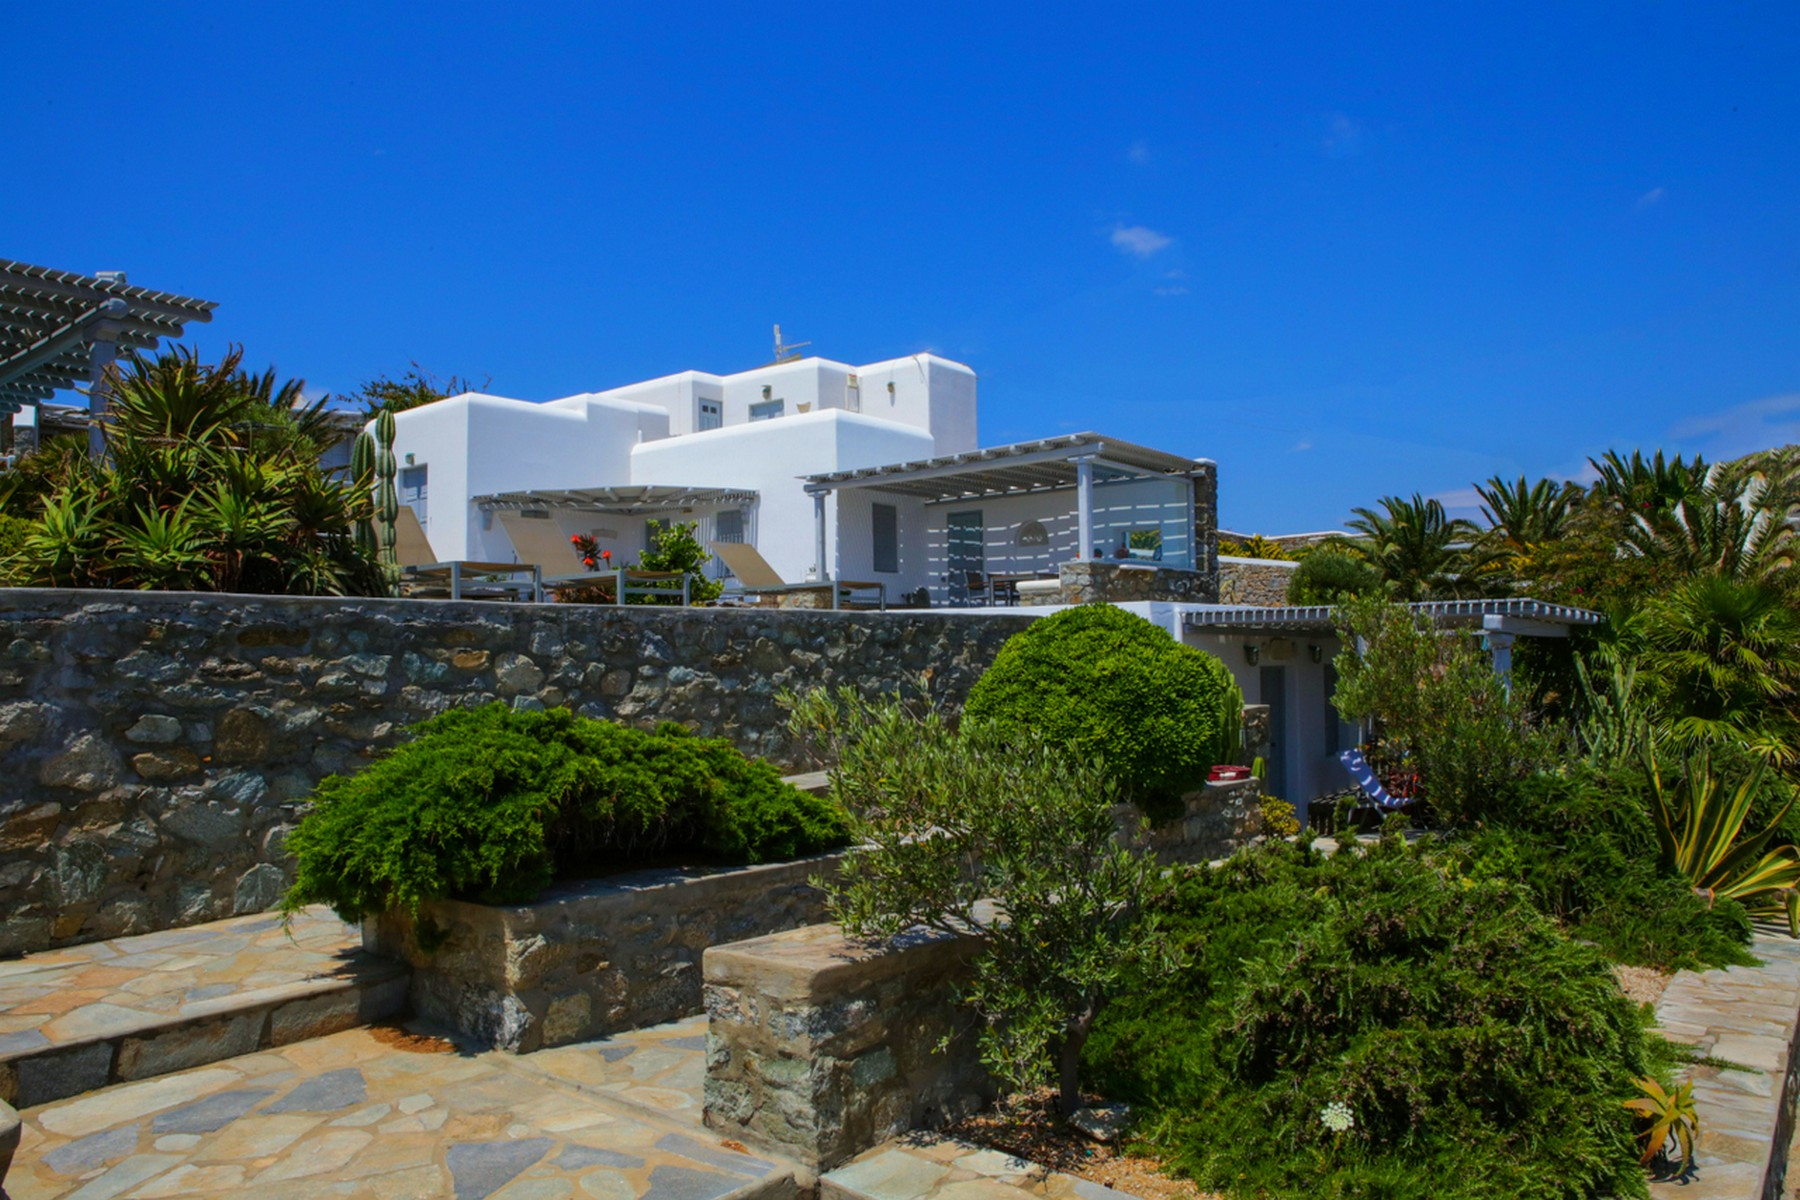 Single Family Home for Sale at St. George Modern Villa Mykonos Mykonos, Southern Aegean 84600 Greece